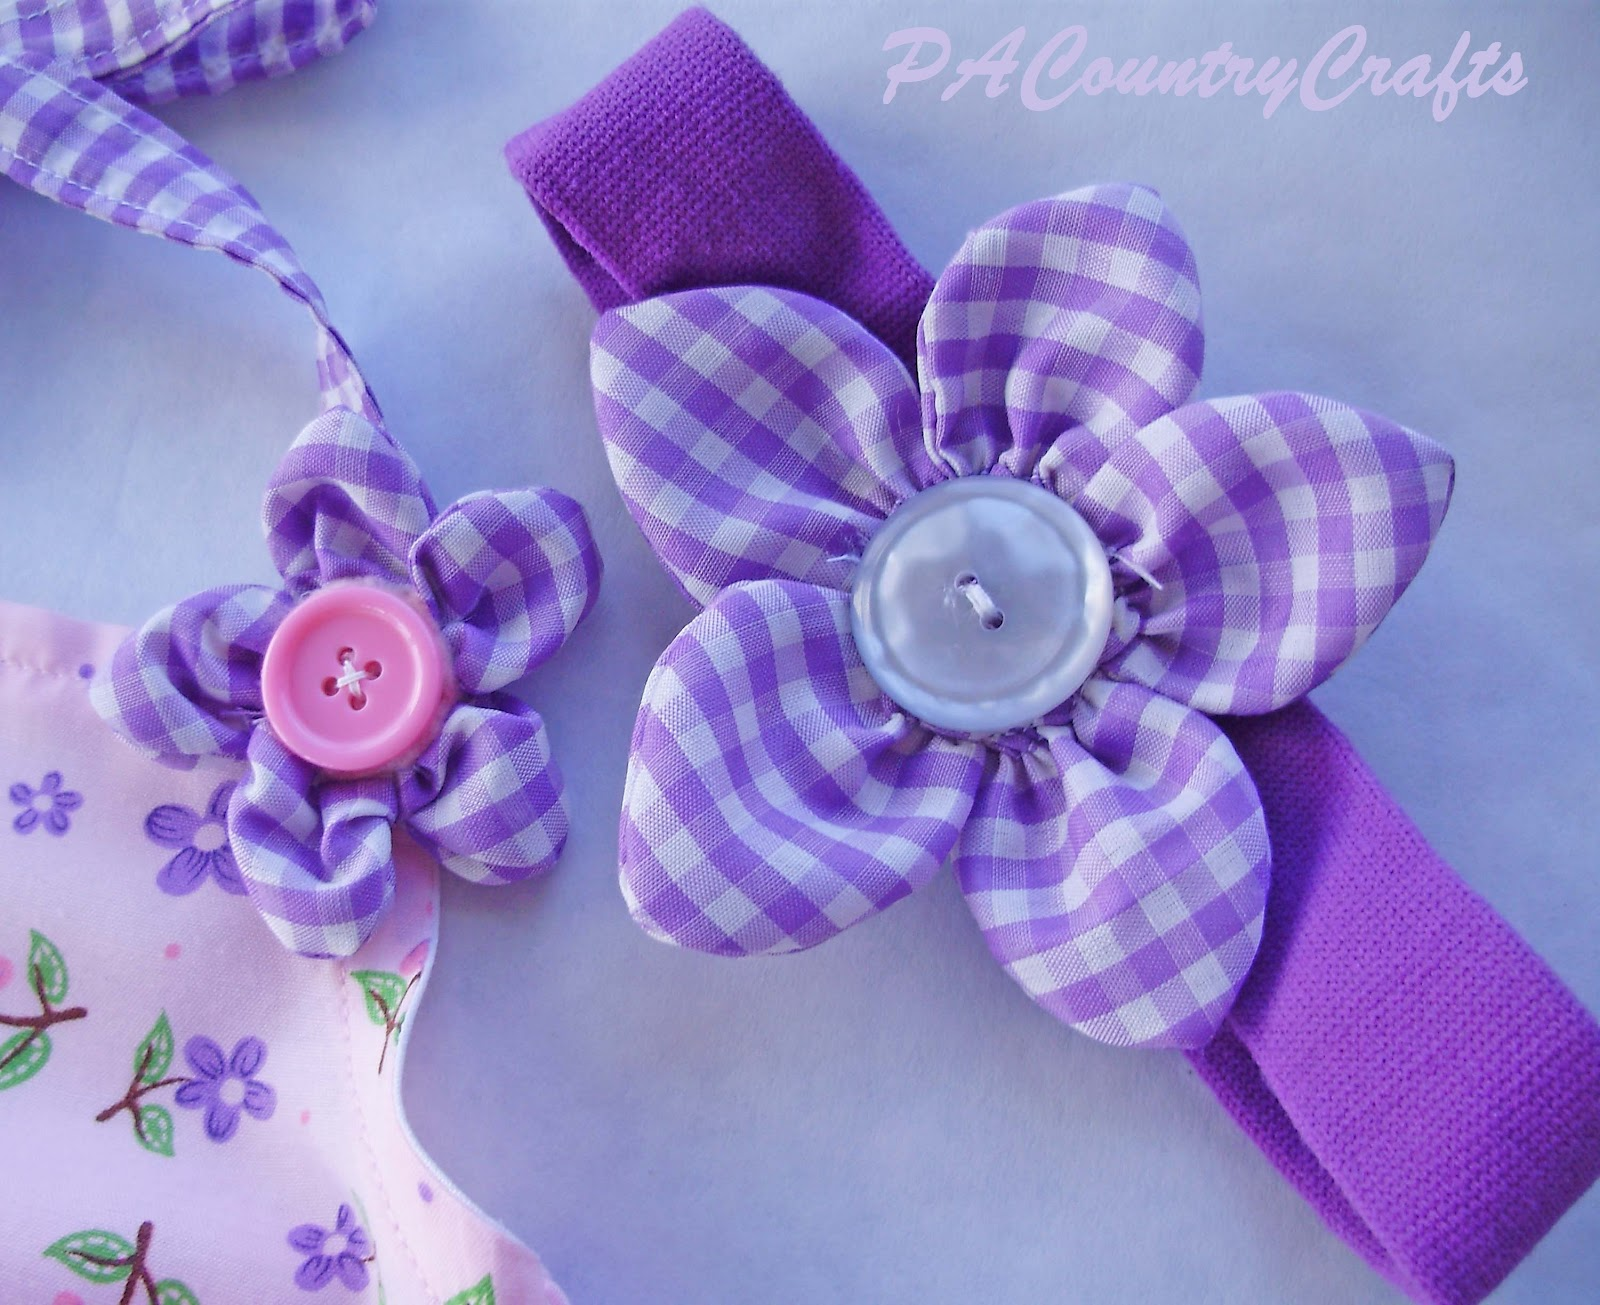 Puffy petal flower tutorial pa country crafts - Crafts with flower petals ...